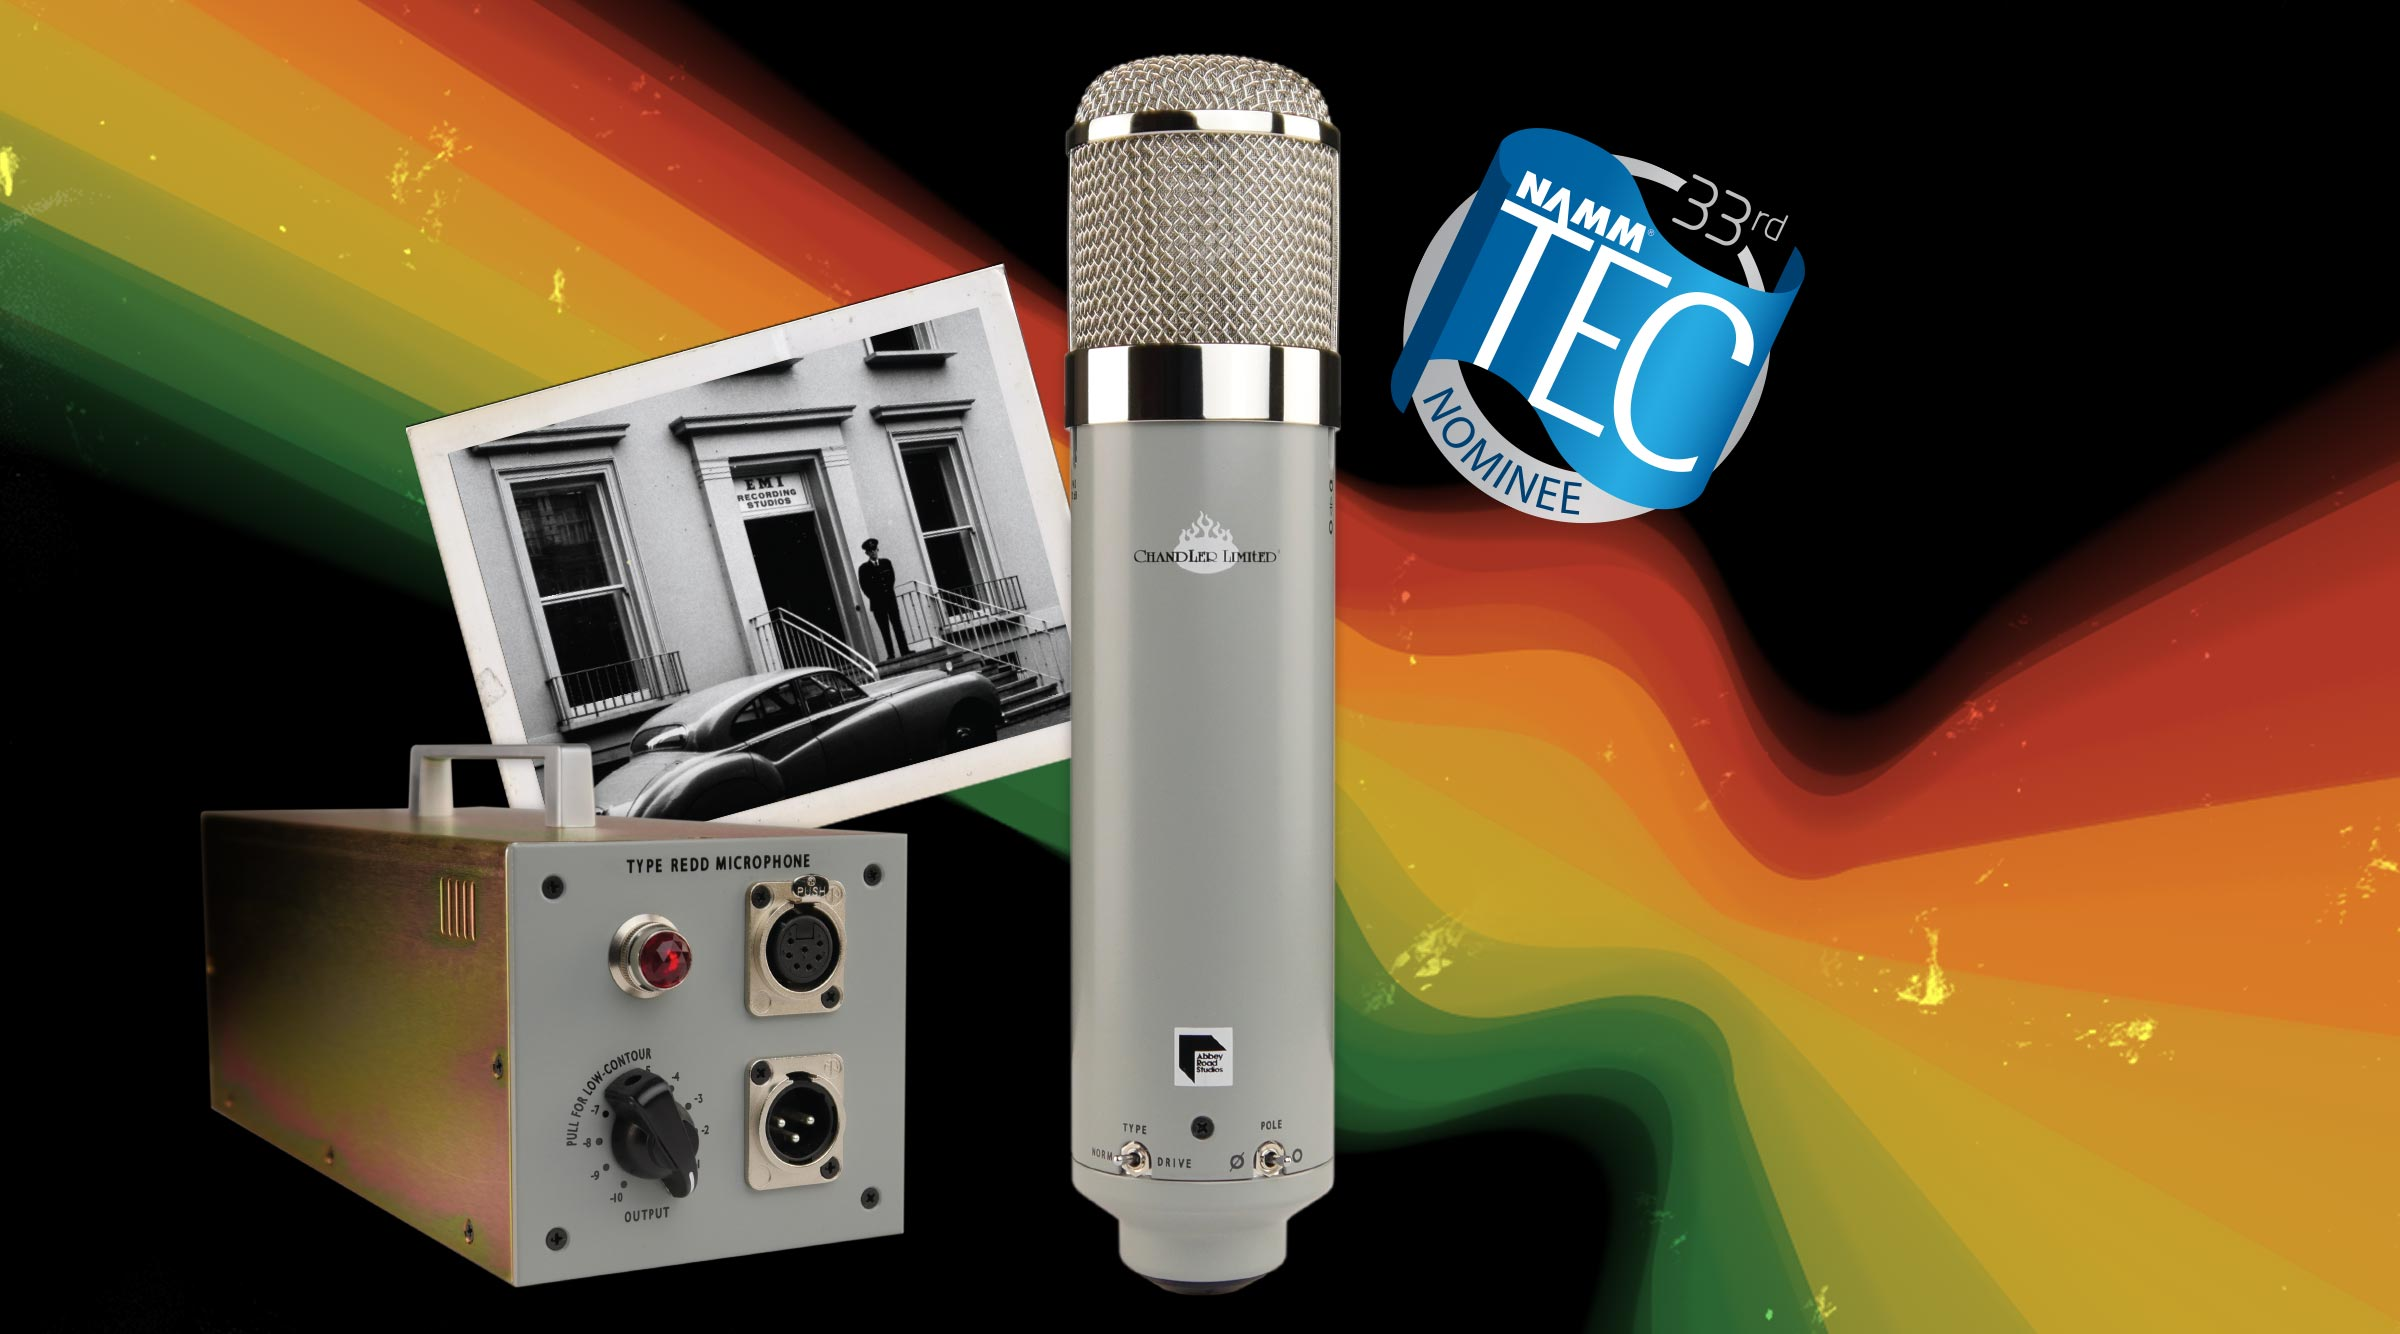 Chandler Limited REDD Microphone EMI Abbey Road Studios NAMM TEC Awards Nomination